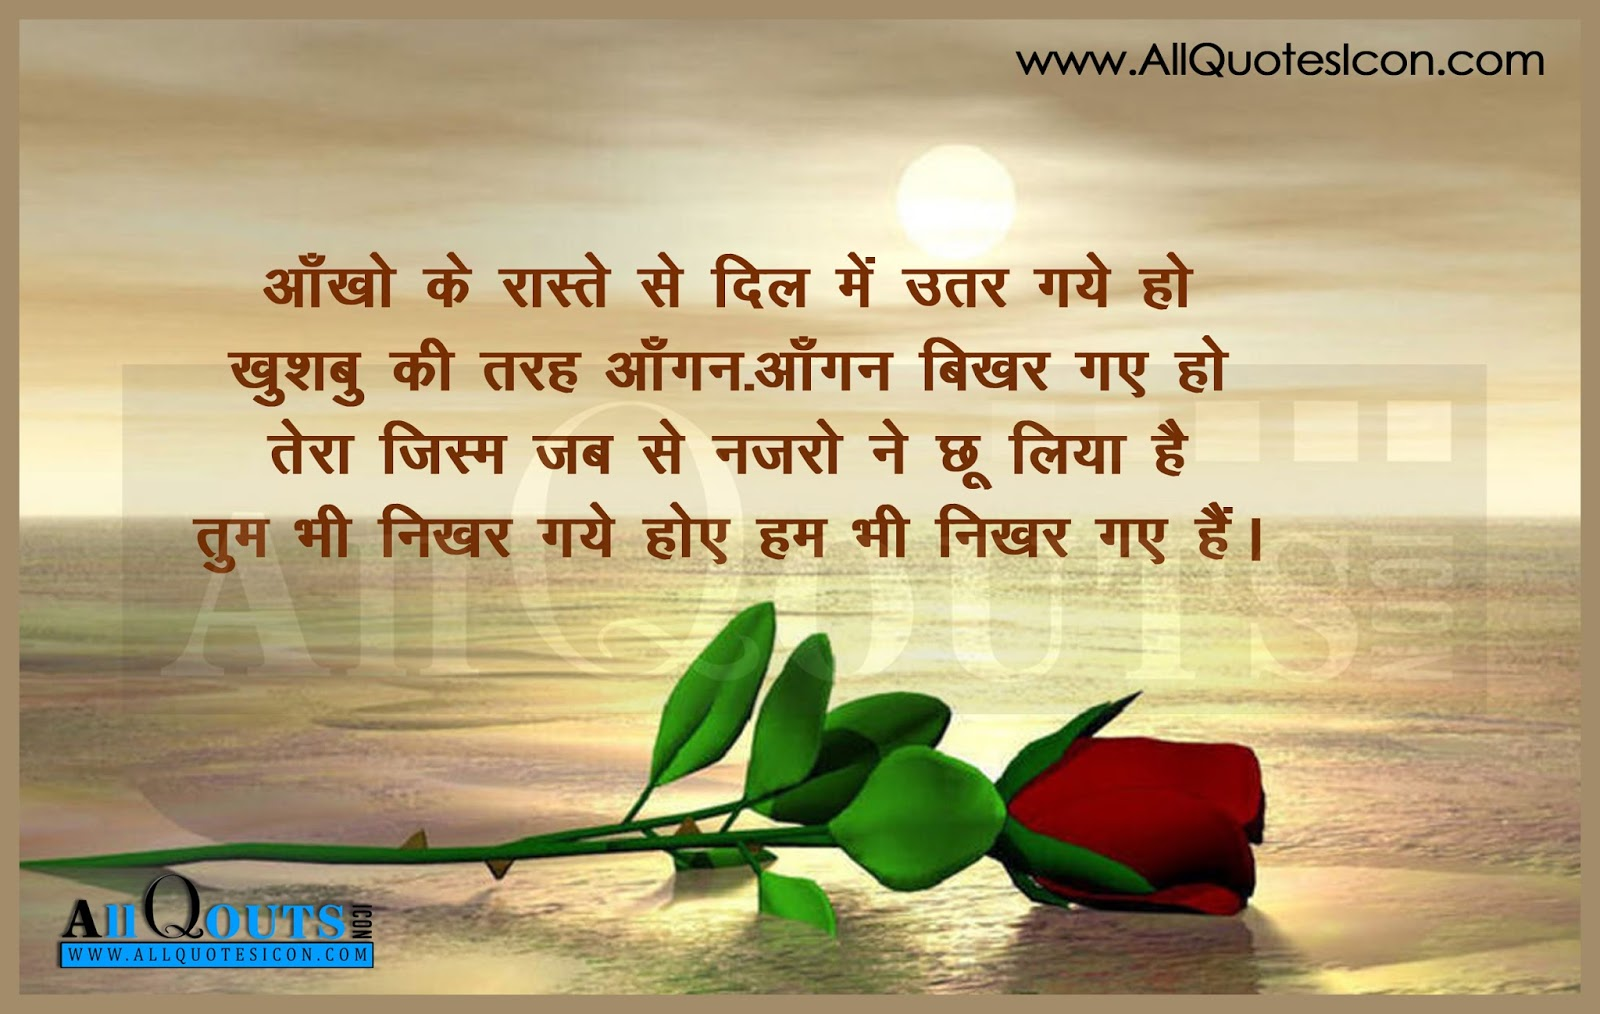 I Love You Quotes In Hindi : hindi love quotes and thoughts best hindi love quotes top hindi love ...